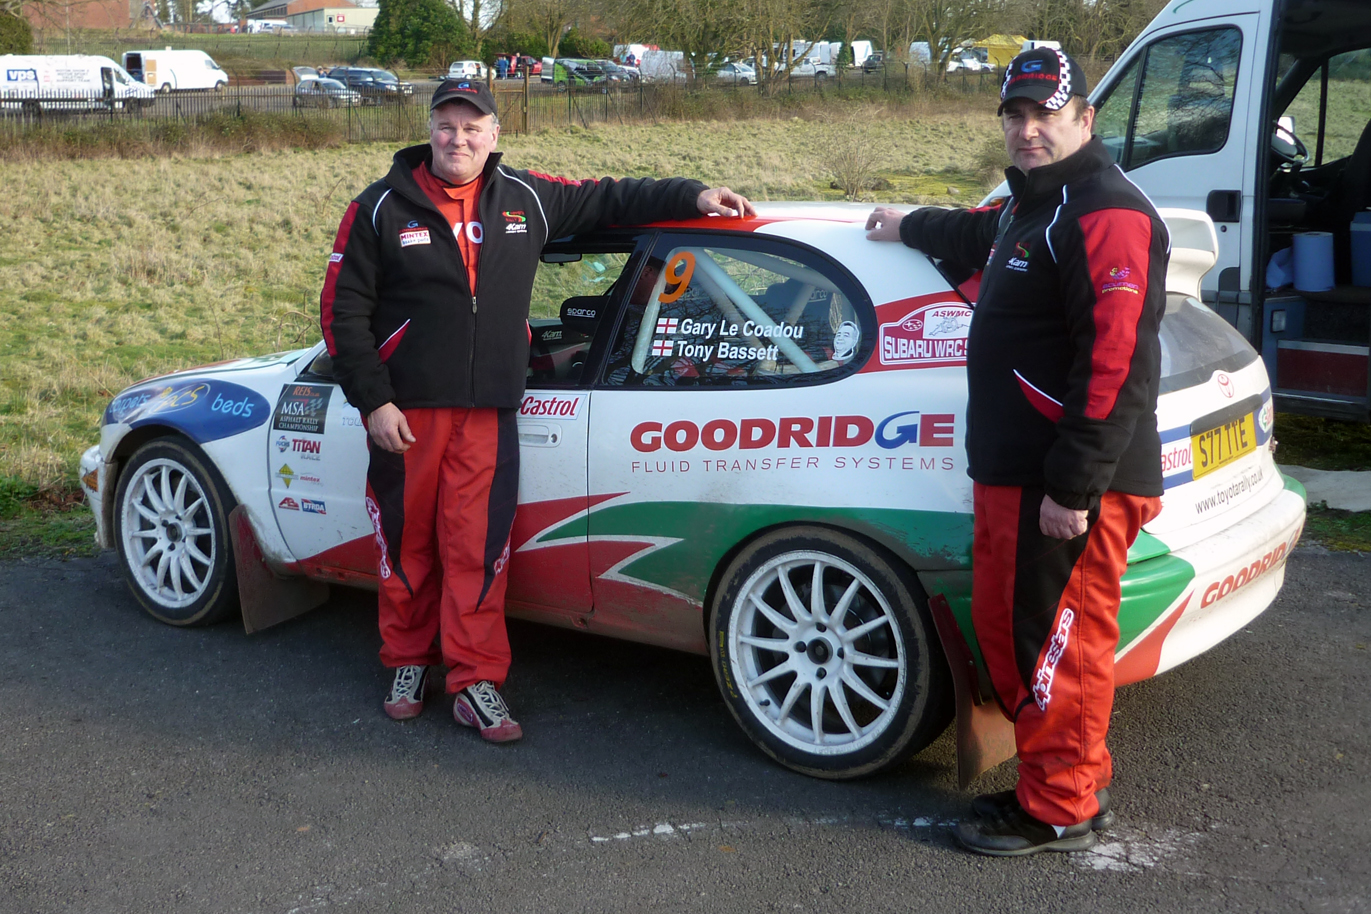 Goodridge Rally Team at Caerwent over the weekend, 1st in class!!